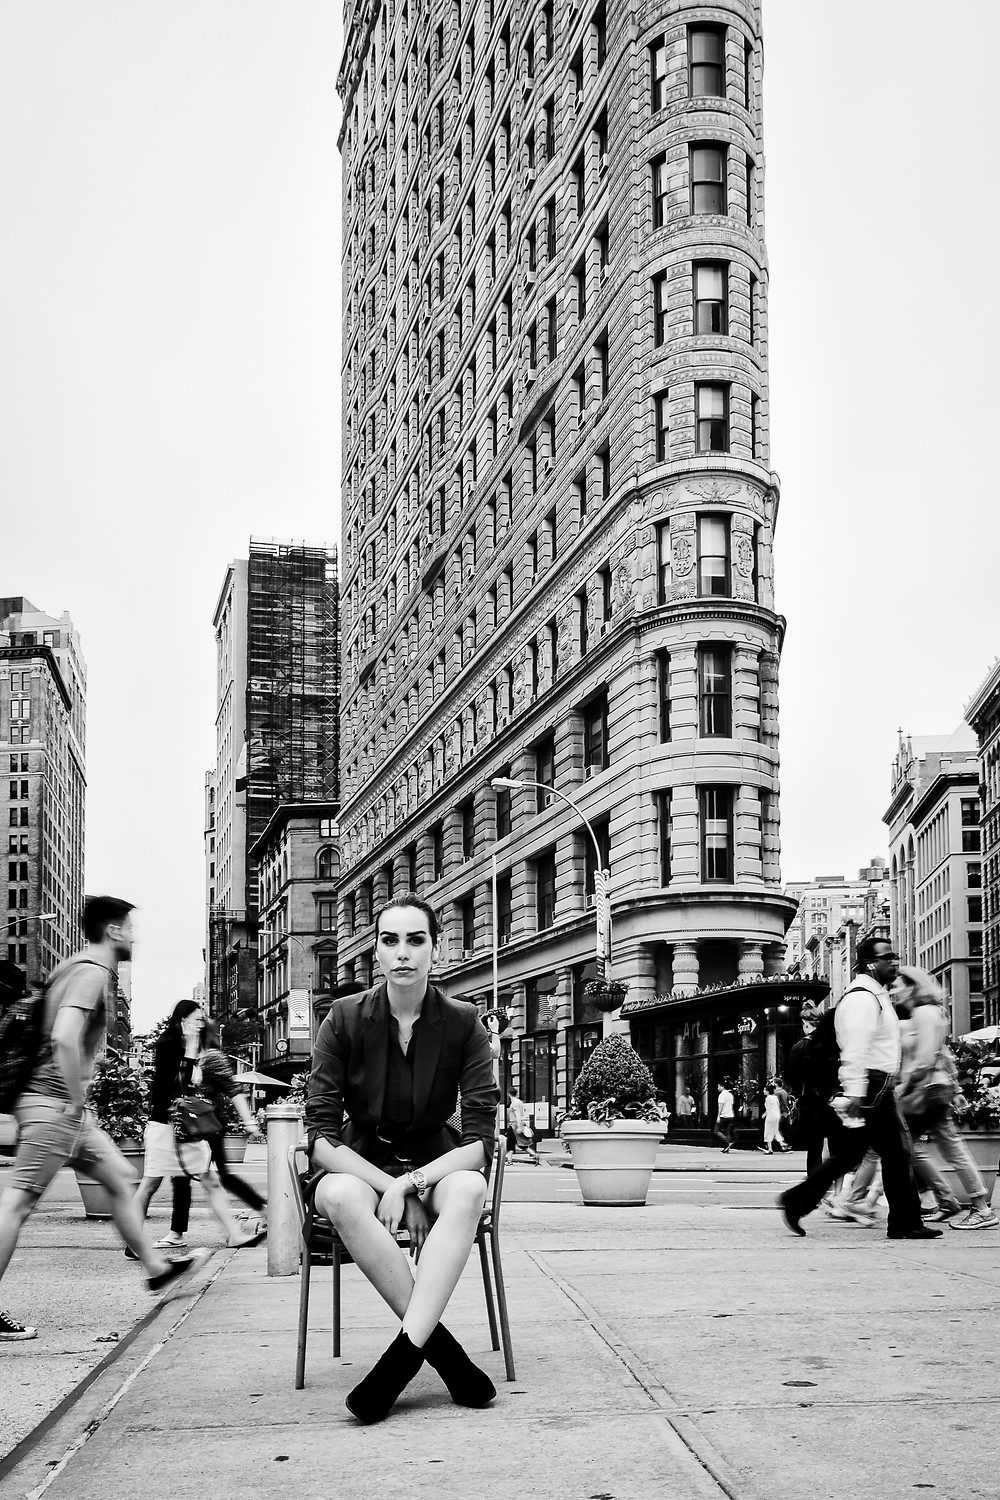 NYC:       FLATIRON FACE - a strong combination of architecture and people at one of NYC´s famous places.